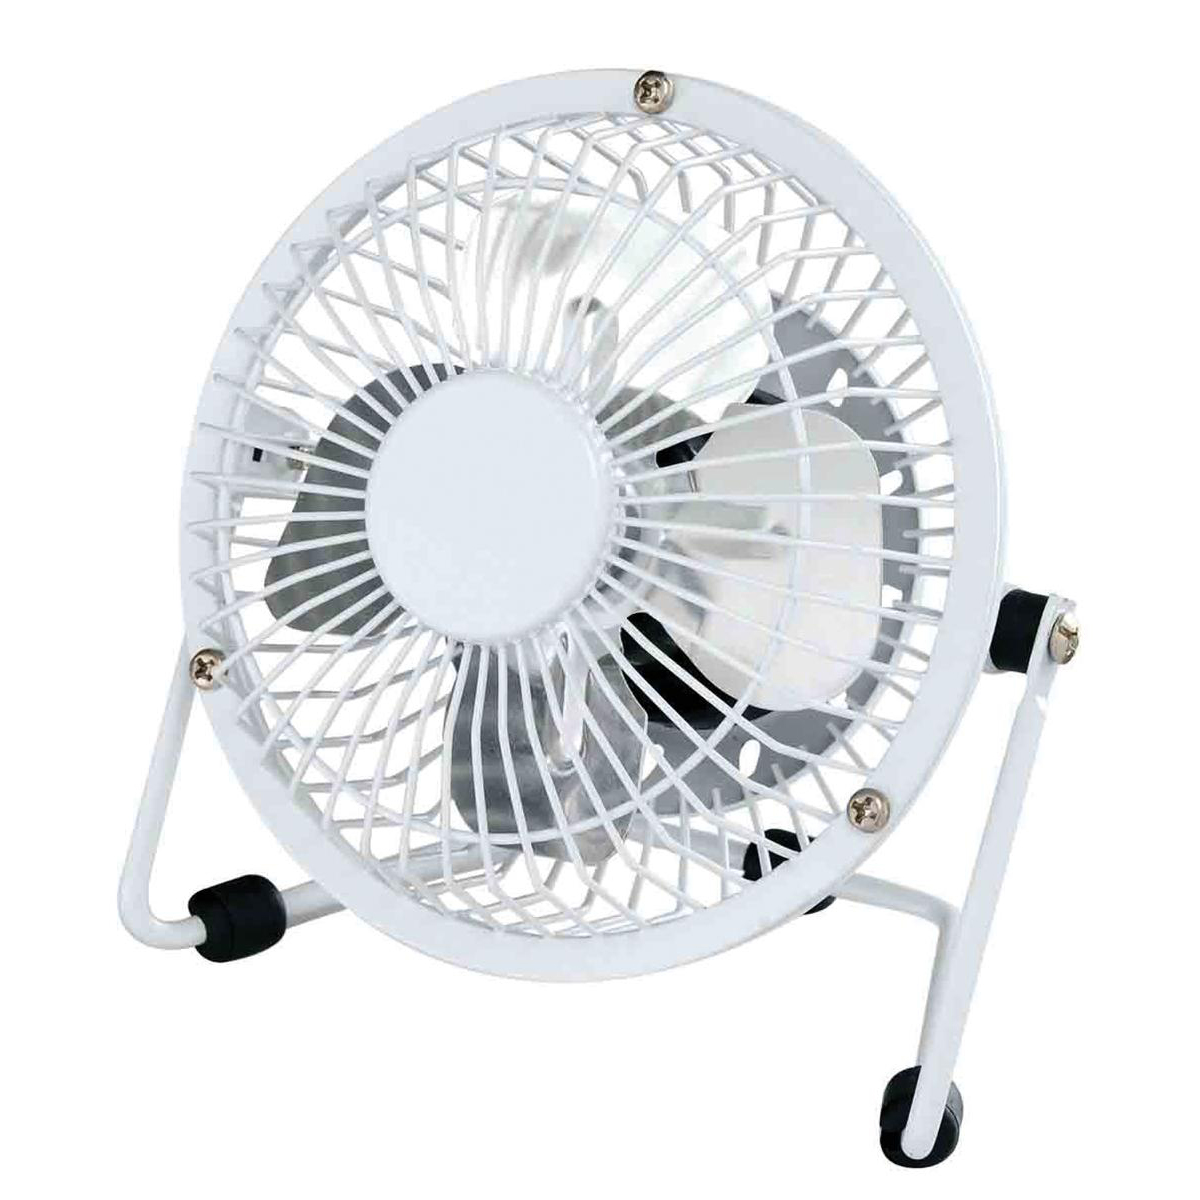 Desk Fans 5 Star Facilities Desk Fan 4 Inch with Tilt USB 2.0 Interface 180deg Adjustable H145mm w/Cable 1m White